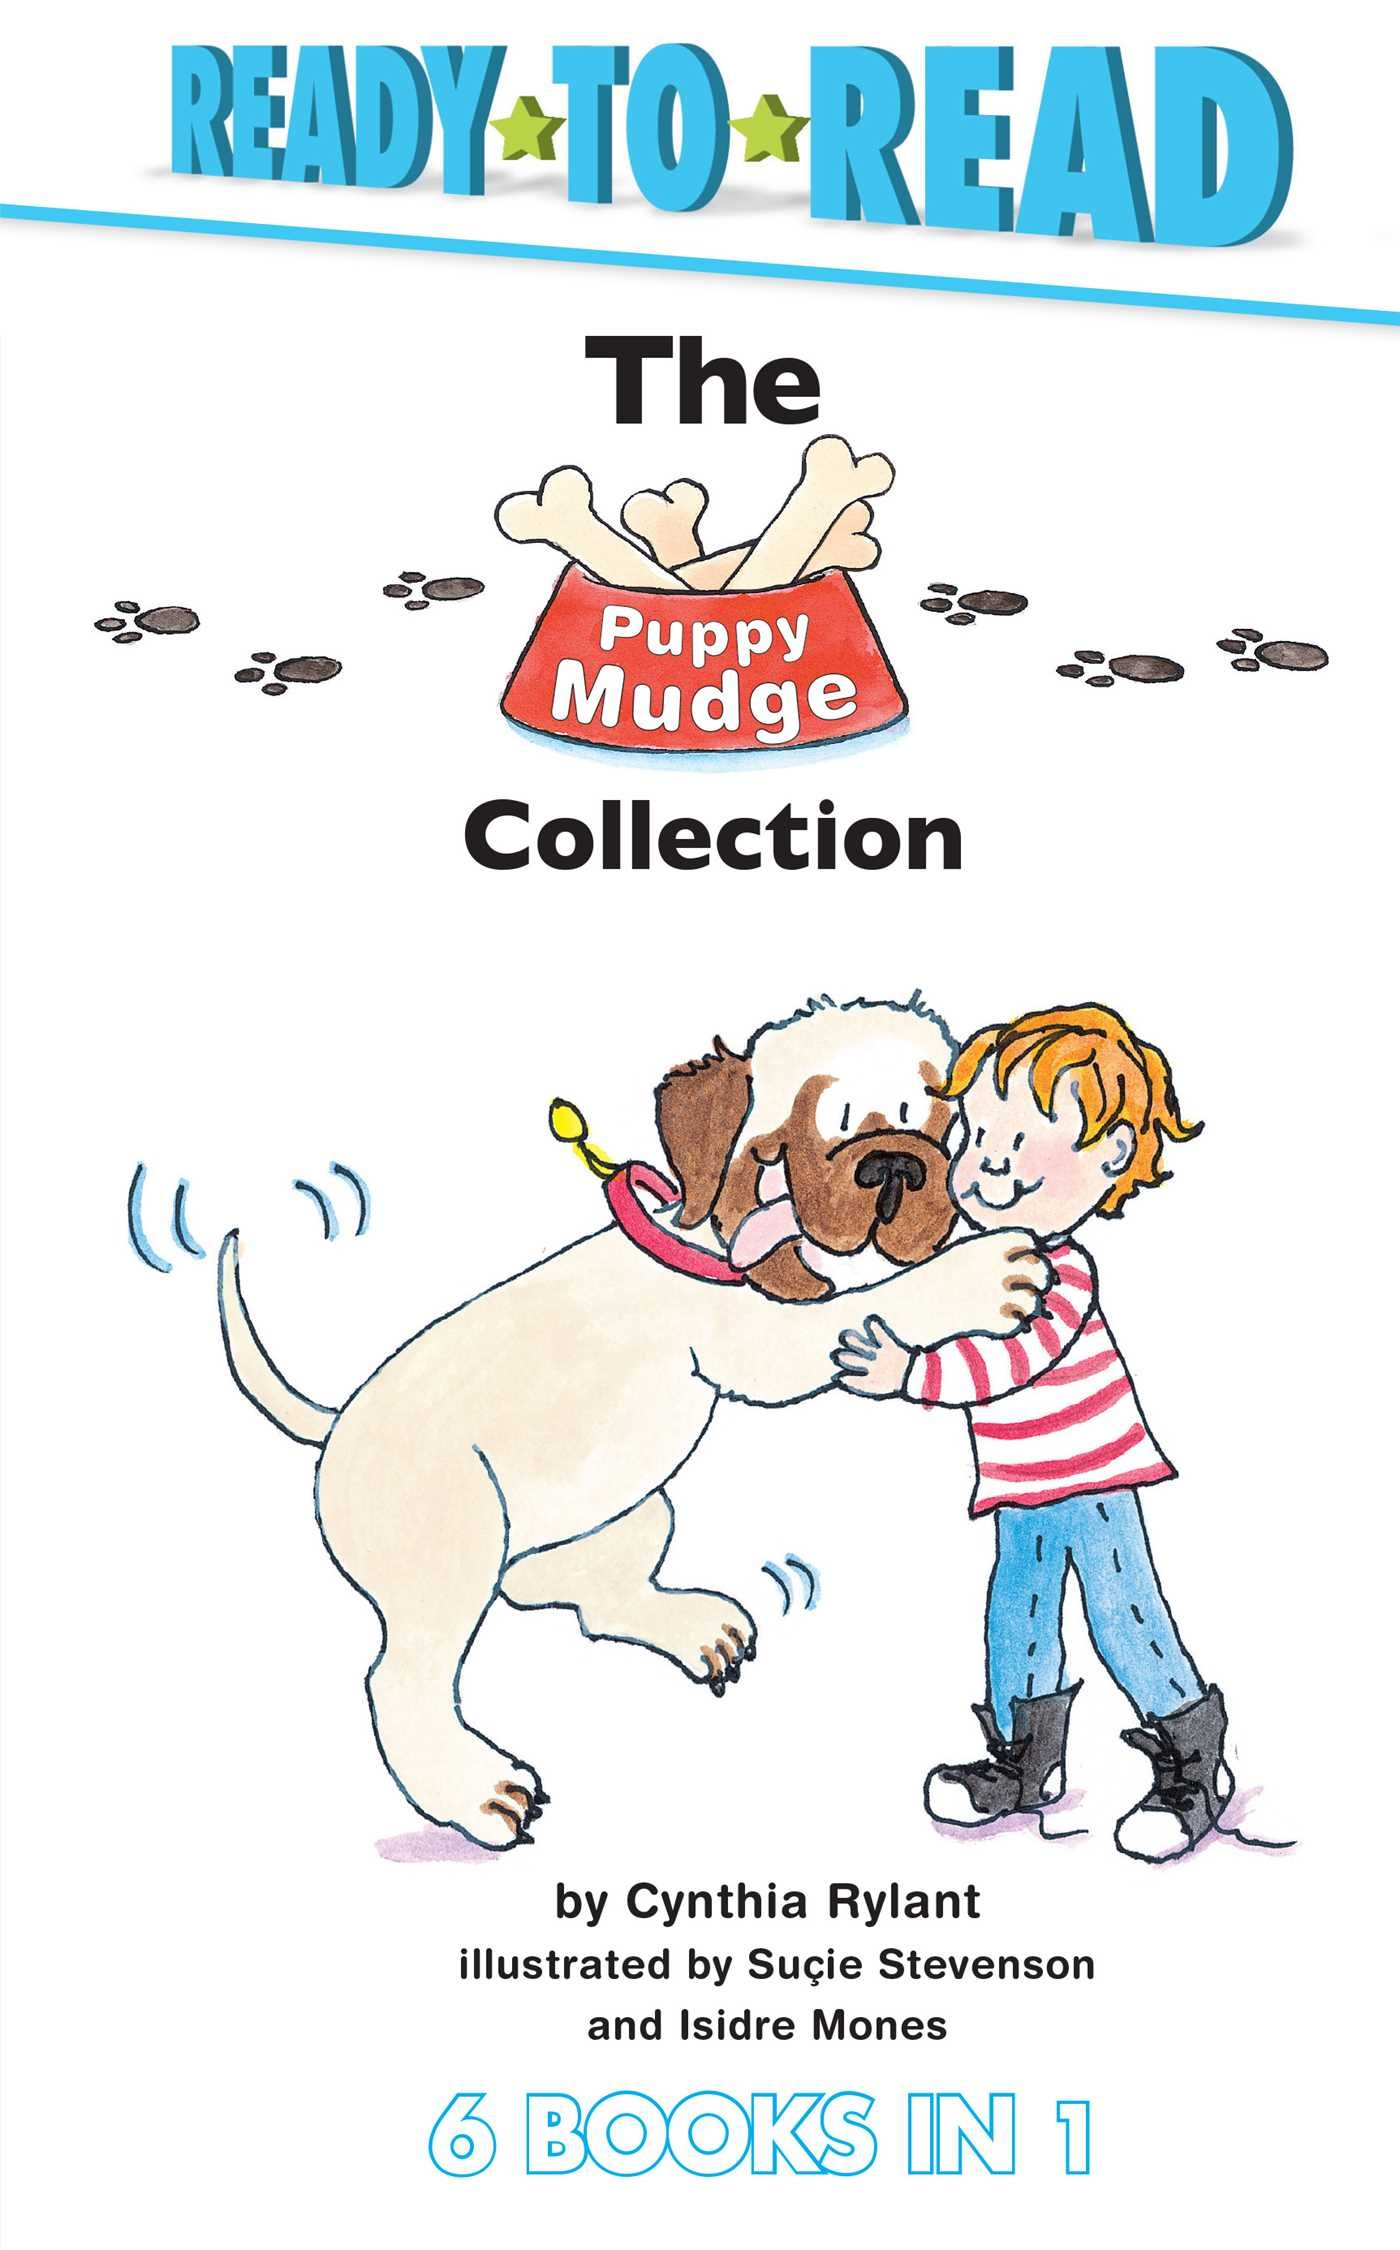 The Puppy Mudge Collection: Puppy Mudge Takes a Bath; Puppy Mudge Wants to Play; Puppy Mudge Has a Snack; Puppy Mudge Loves His Blanket; Puppy Mudge Finds a Friend; Henry and Mudge -- The First Book